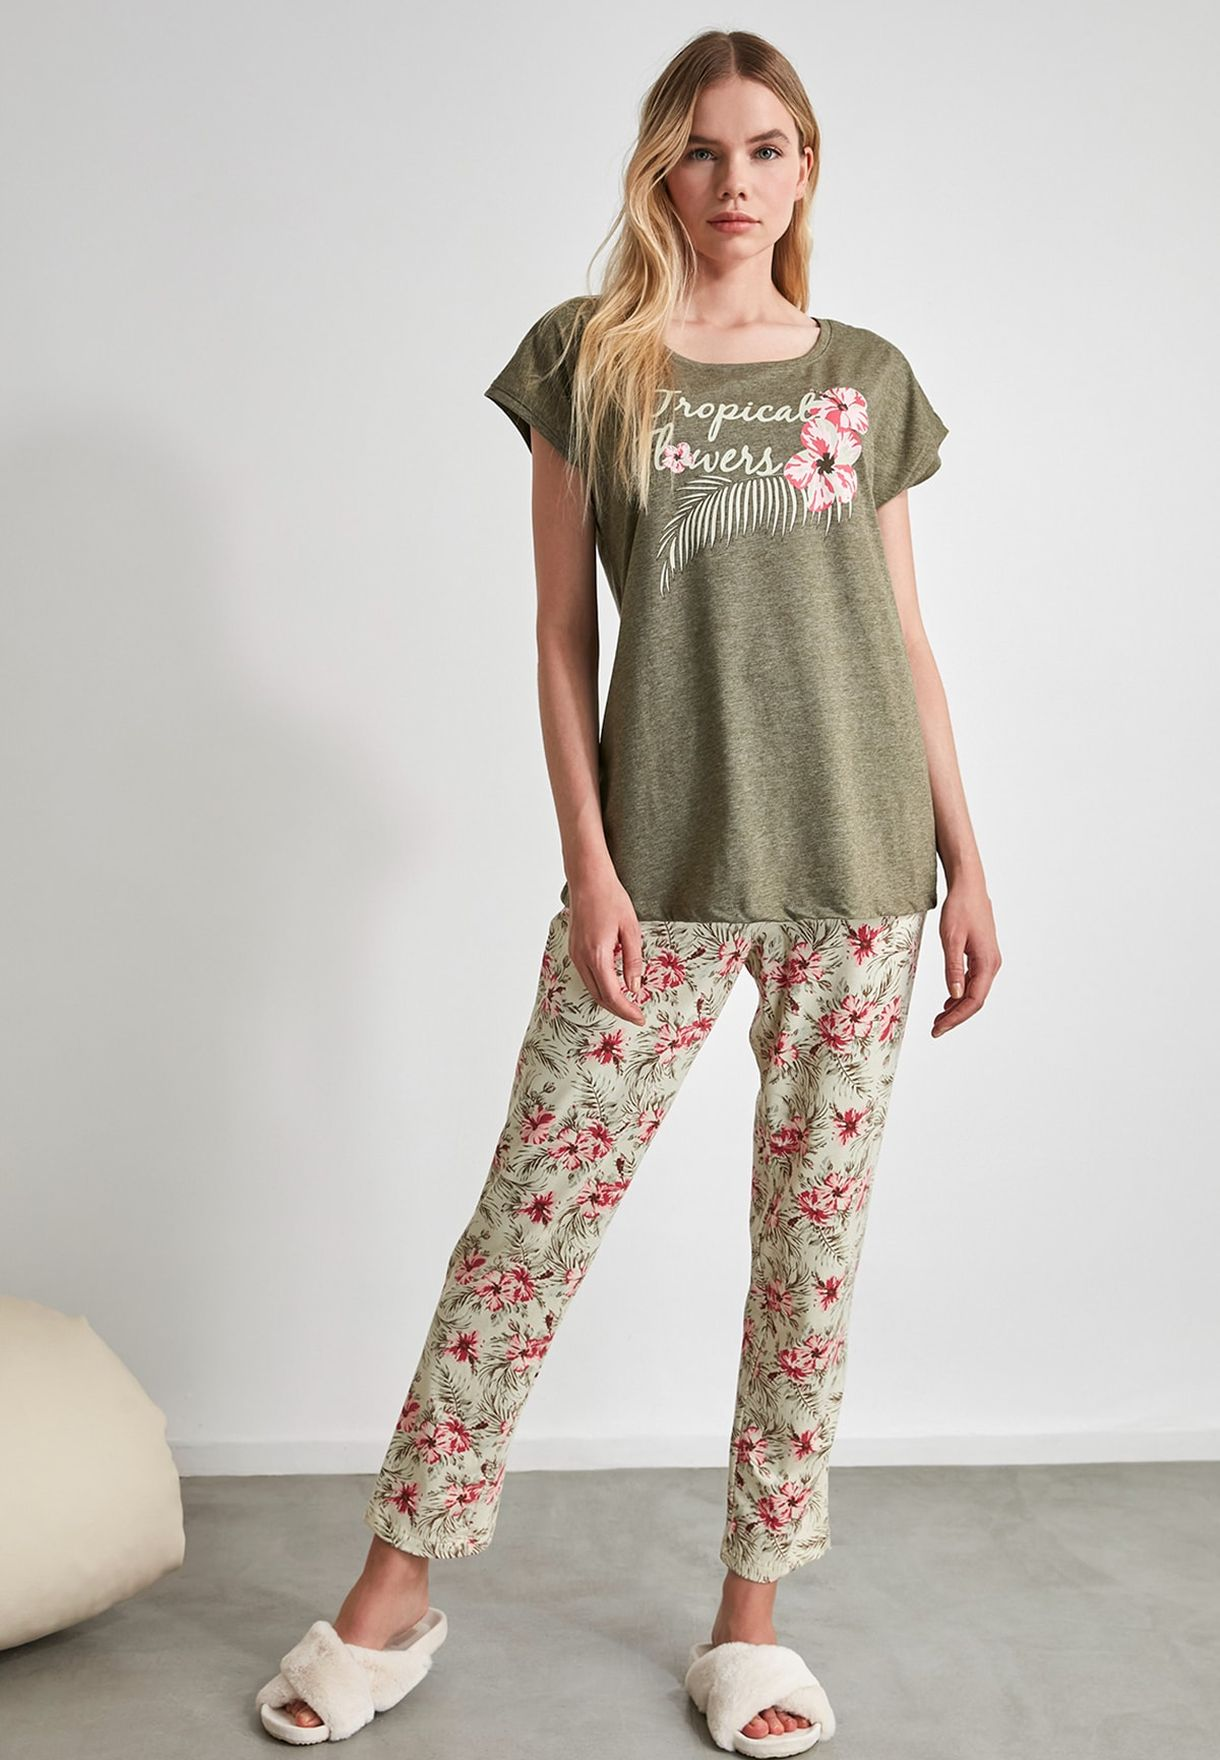 Graphic T-Shirt & Pyajama Set